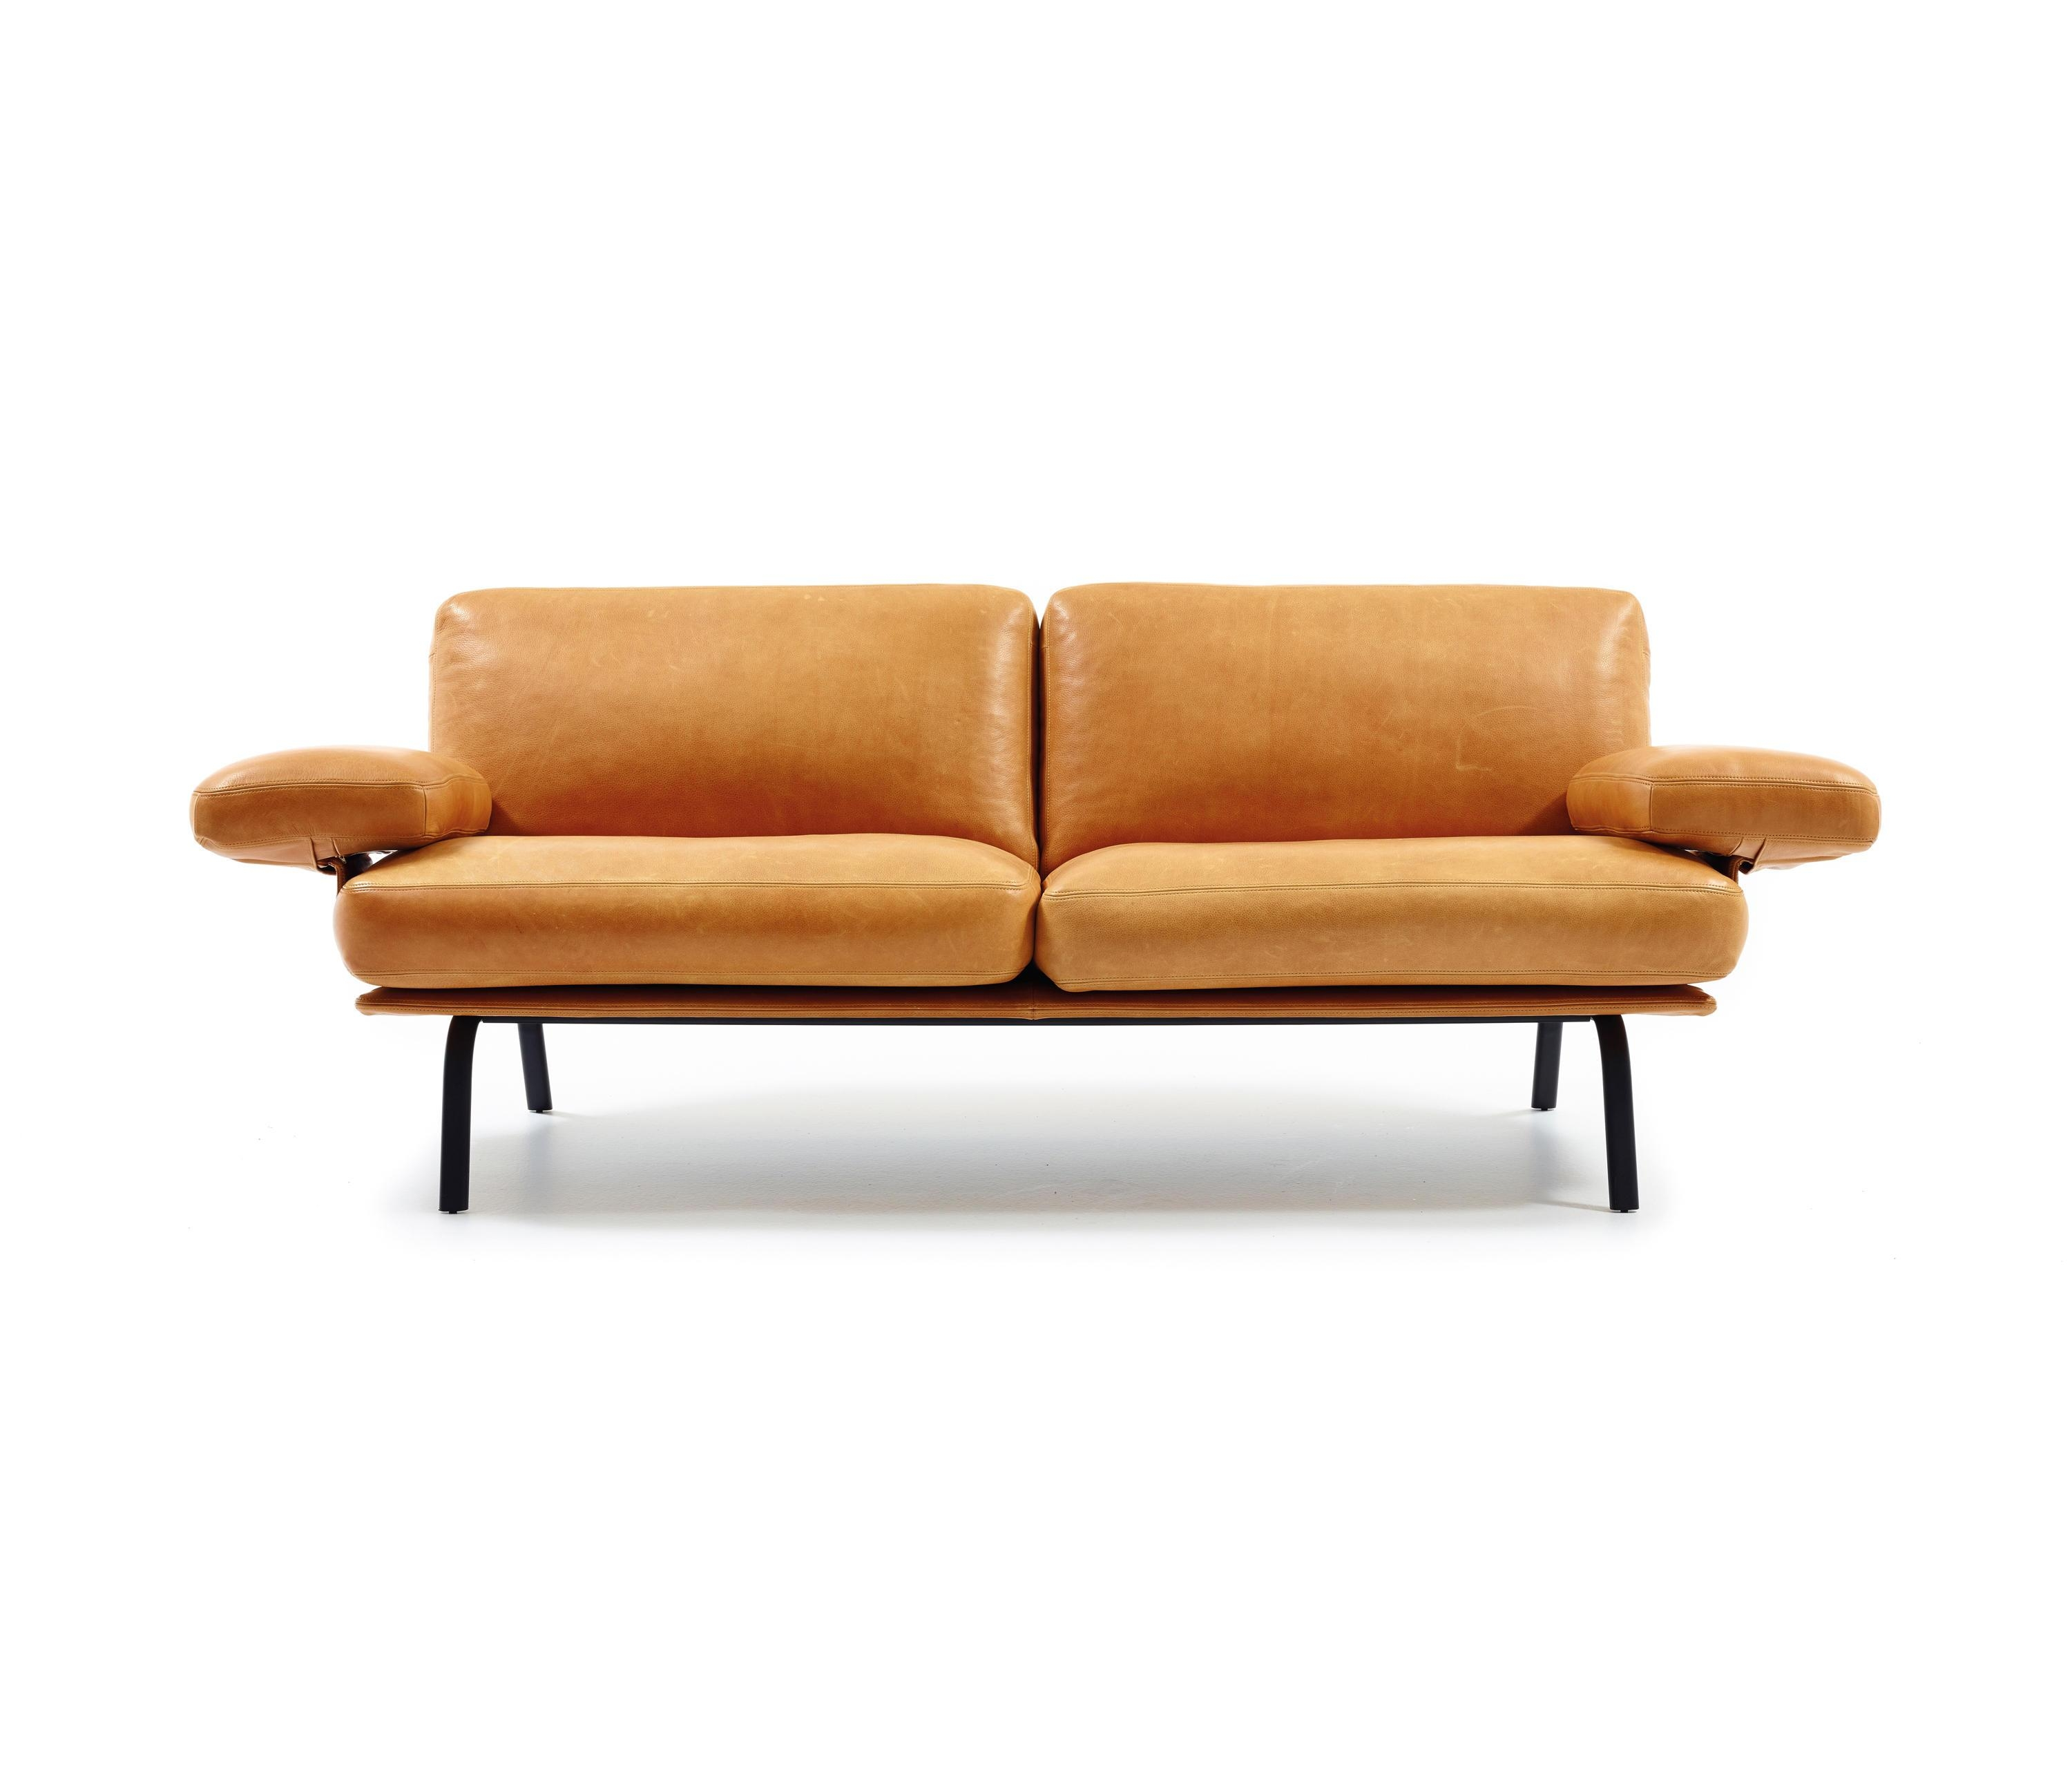 New Port – Lounge Sofas From Durlet | Architonic With Newport Sofas (Image 7 of 20)